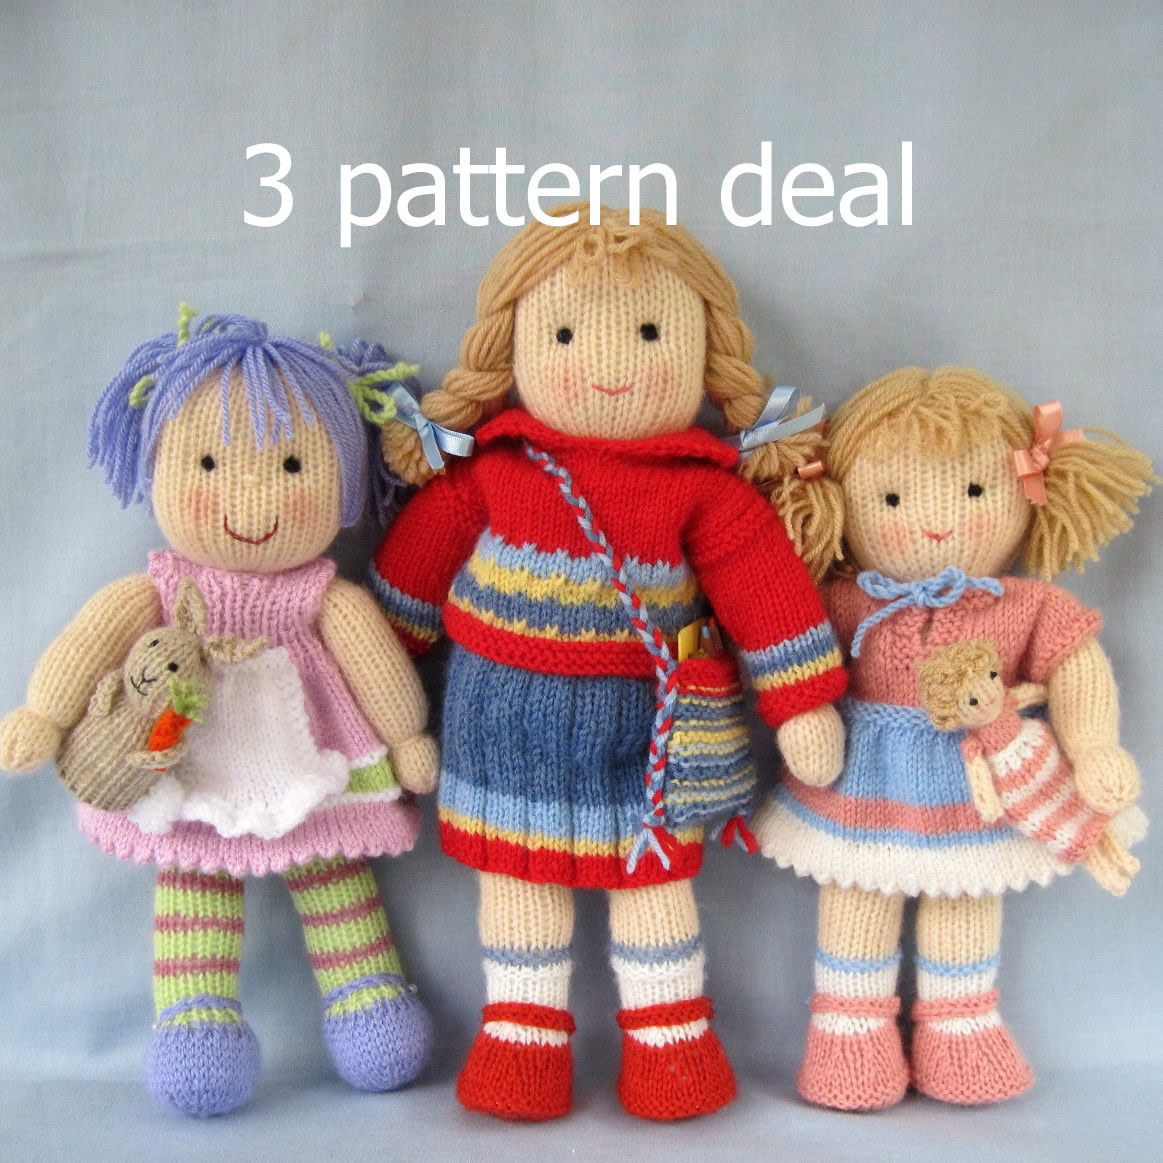 Awesome Jack and Jill Doll Knitting Patterns Knitted Baby Knitted Doll Patterns Of Lovely 40 Models Knitted Doll Patterns